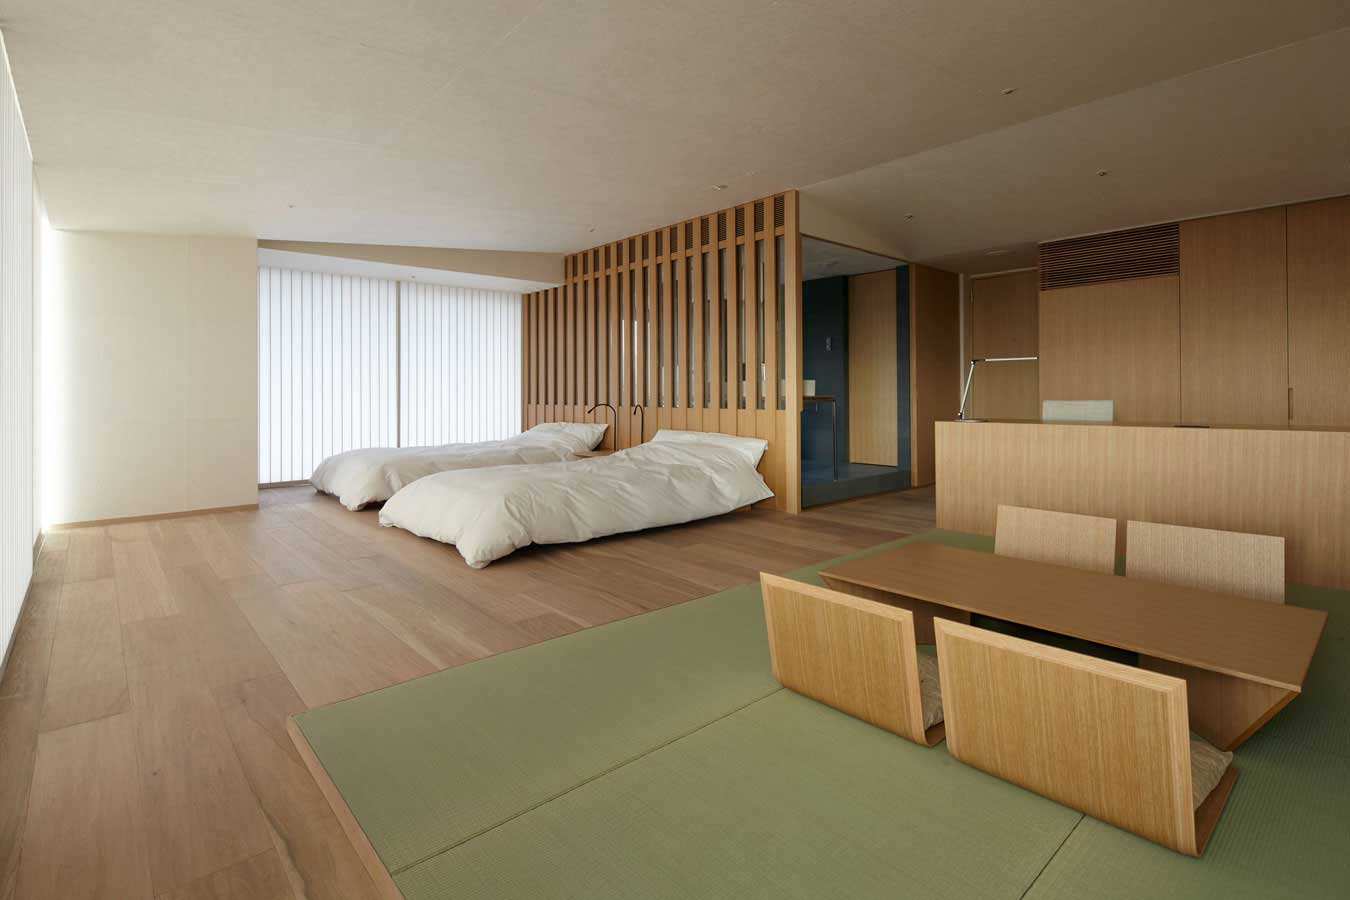 Modern japanese bedroom design 11 designs - Modern japanese bedroom furniture ...